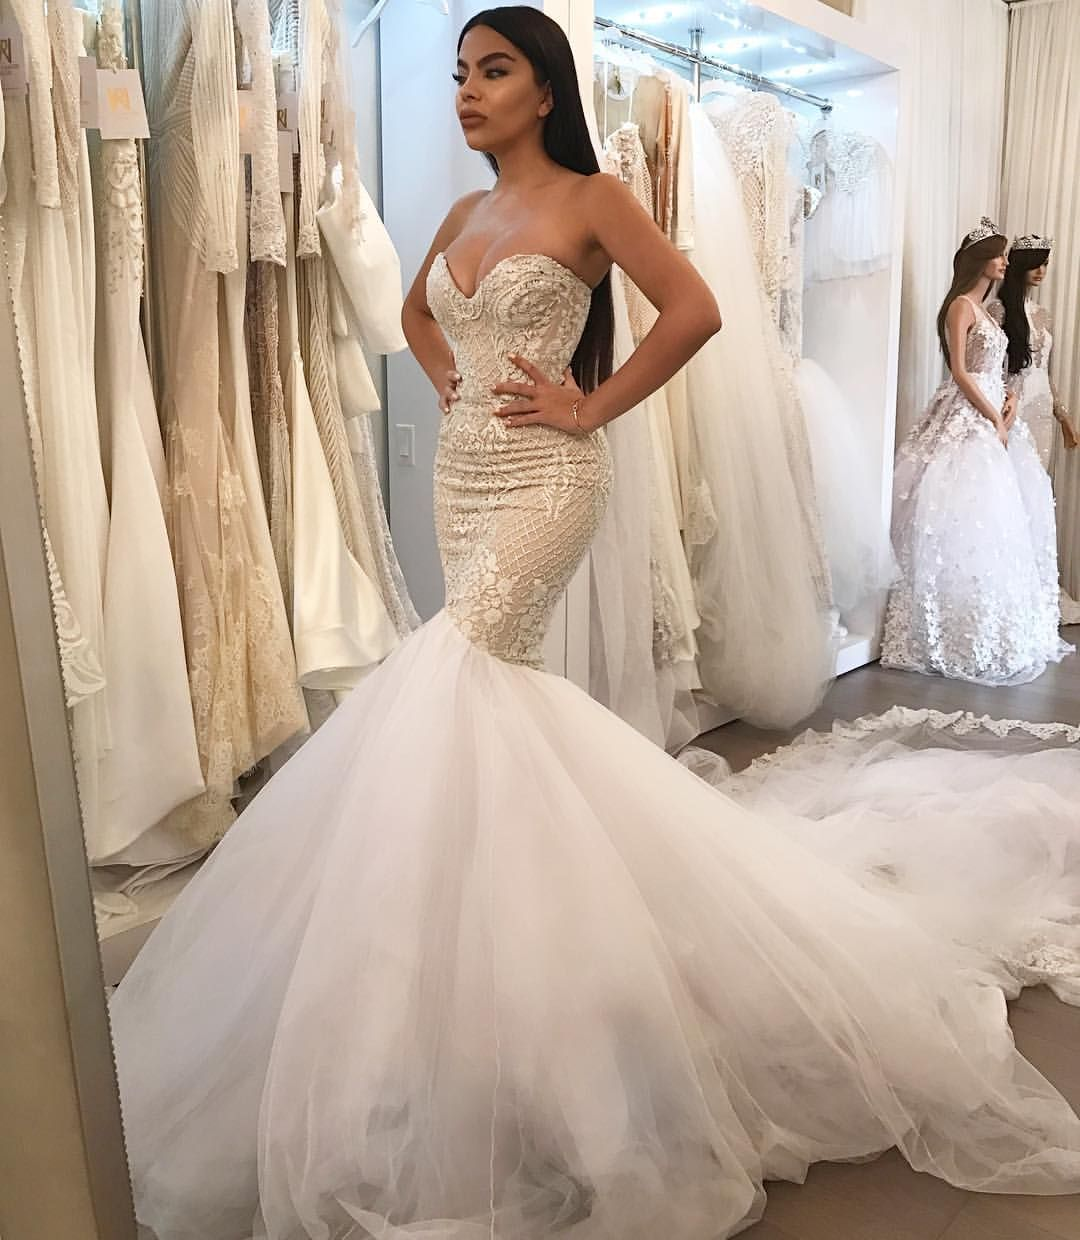 Small Of Vow Renewal Dresses